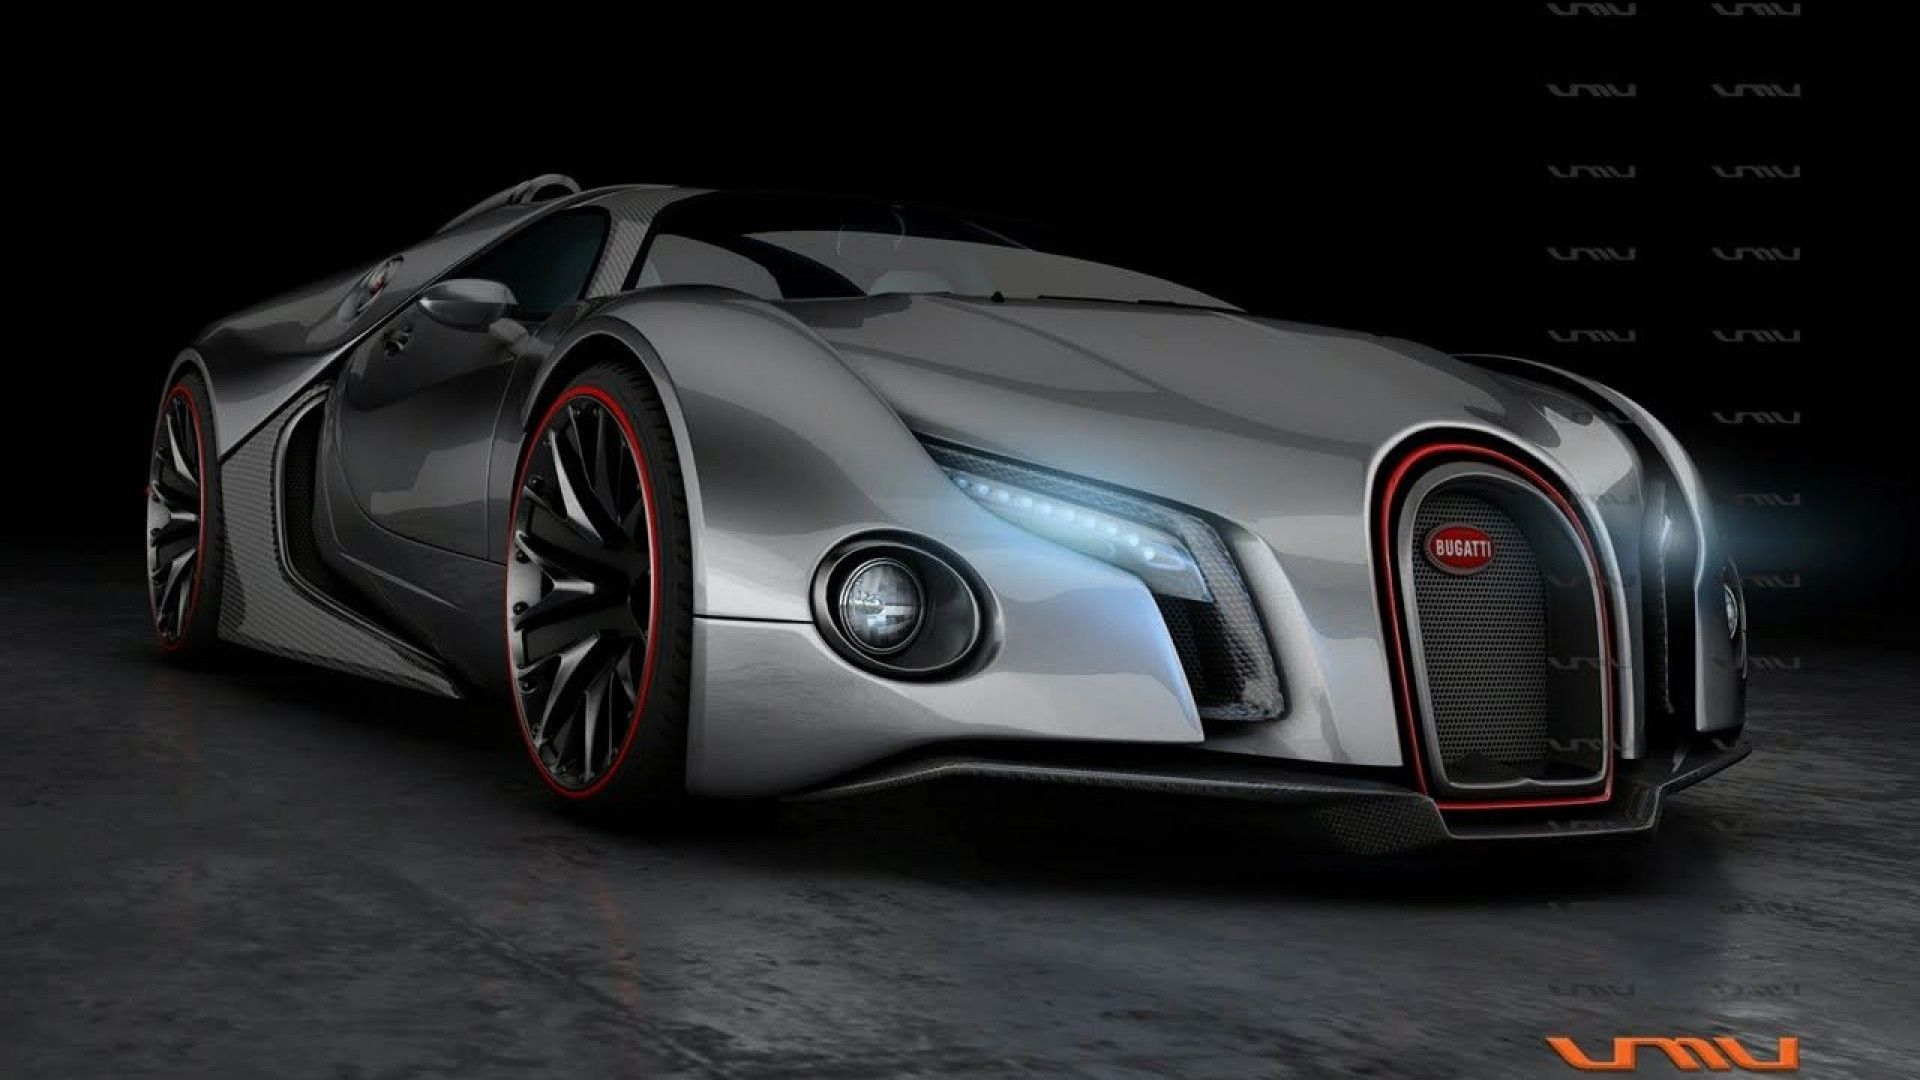 BUGATTI VEYRON PICTURES AND WALLPAPERS  BUGATTI  Pinterest